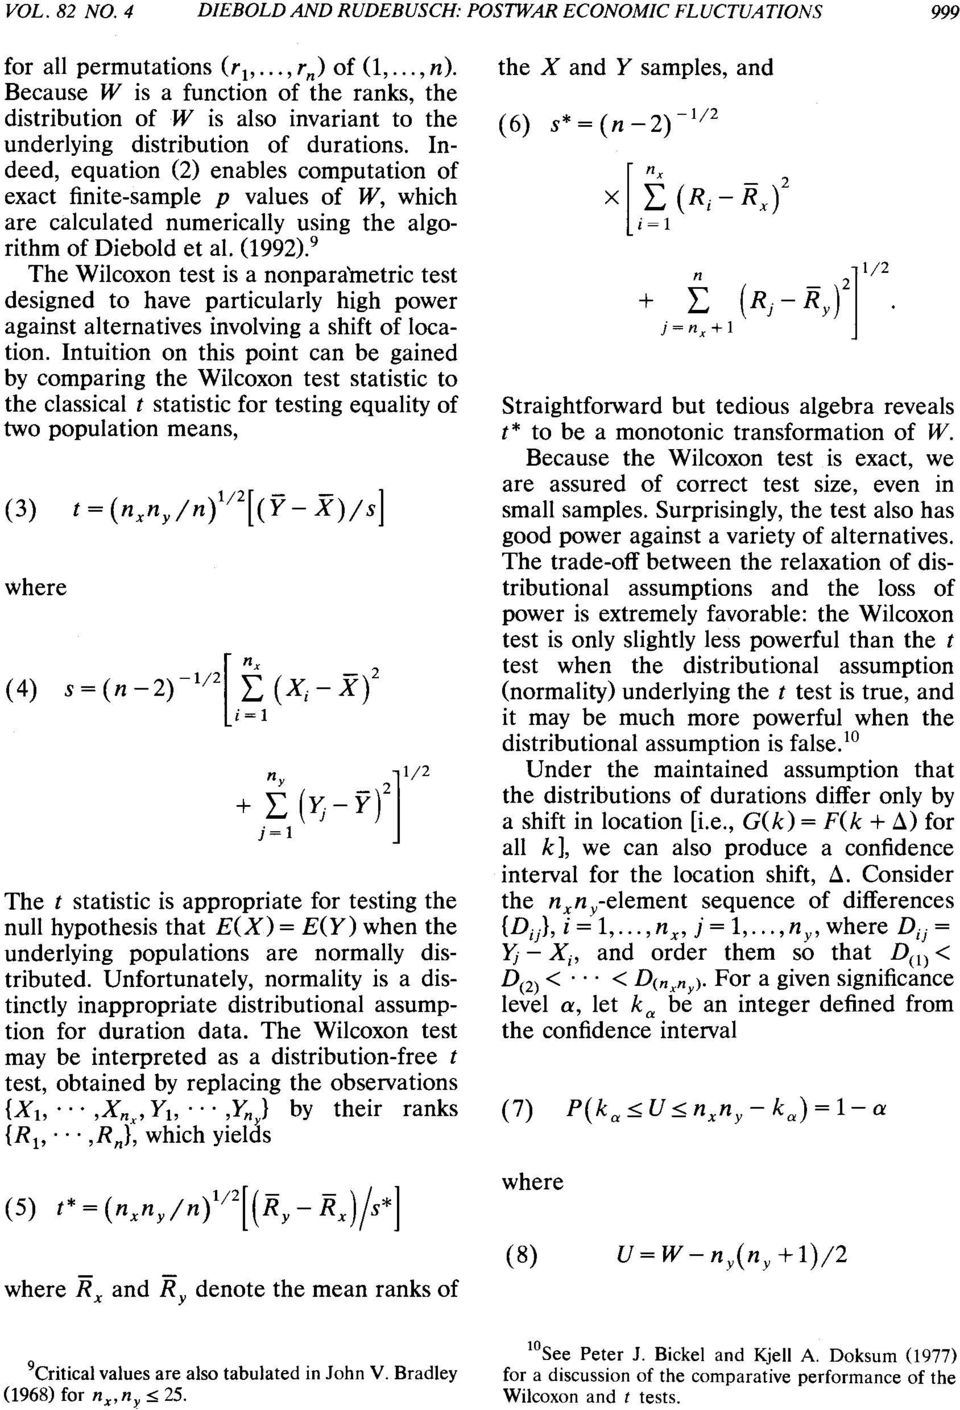 Indeed, equation (2) enables computation of exact finite-sample p values of W, which are calculated numerically using the algorithm of Diebold et al. (1992).